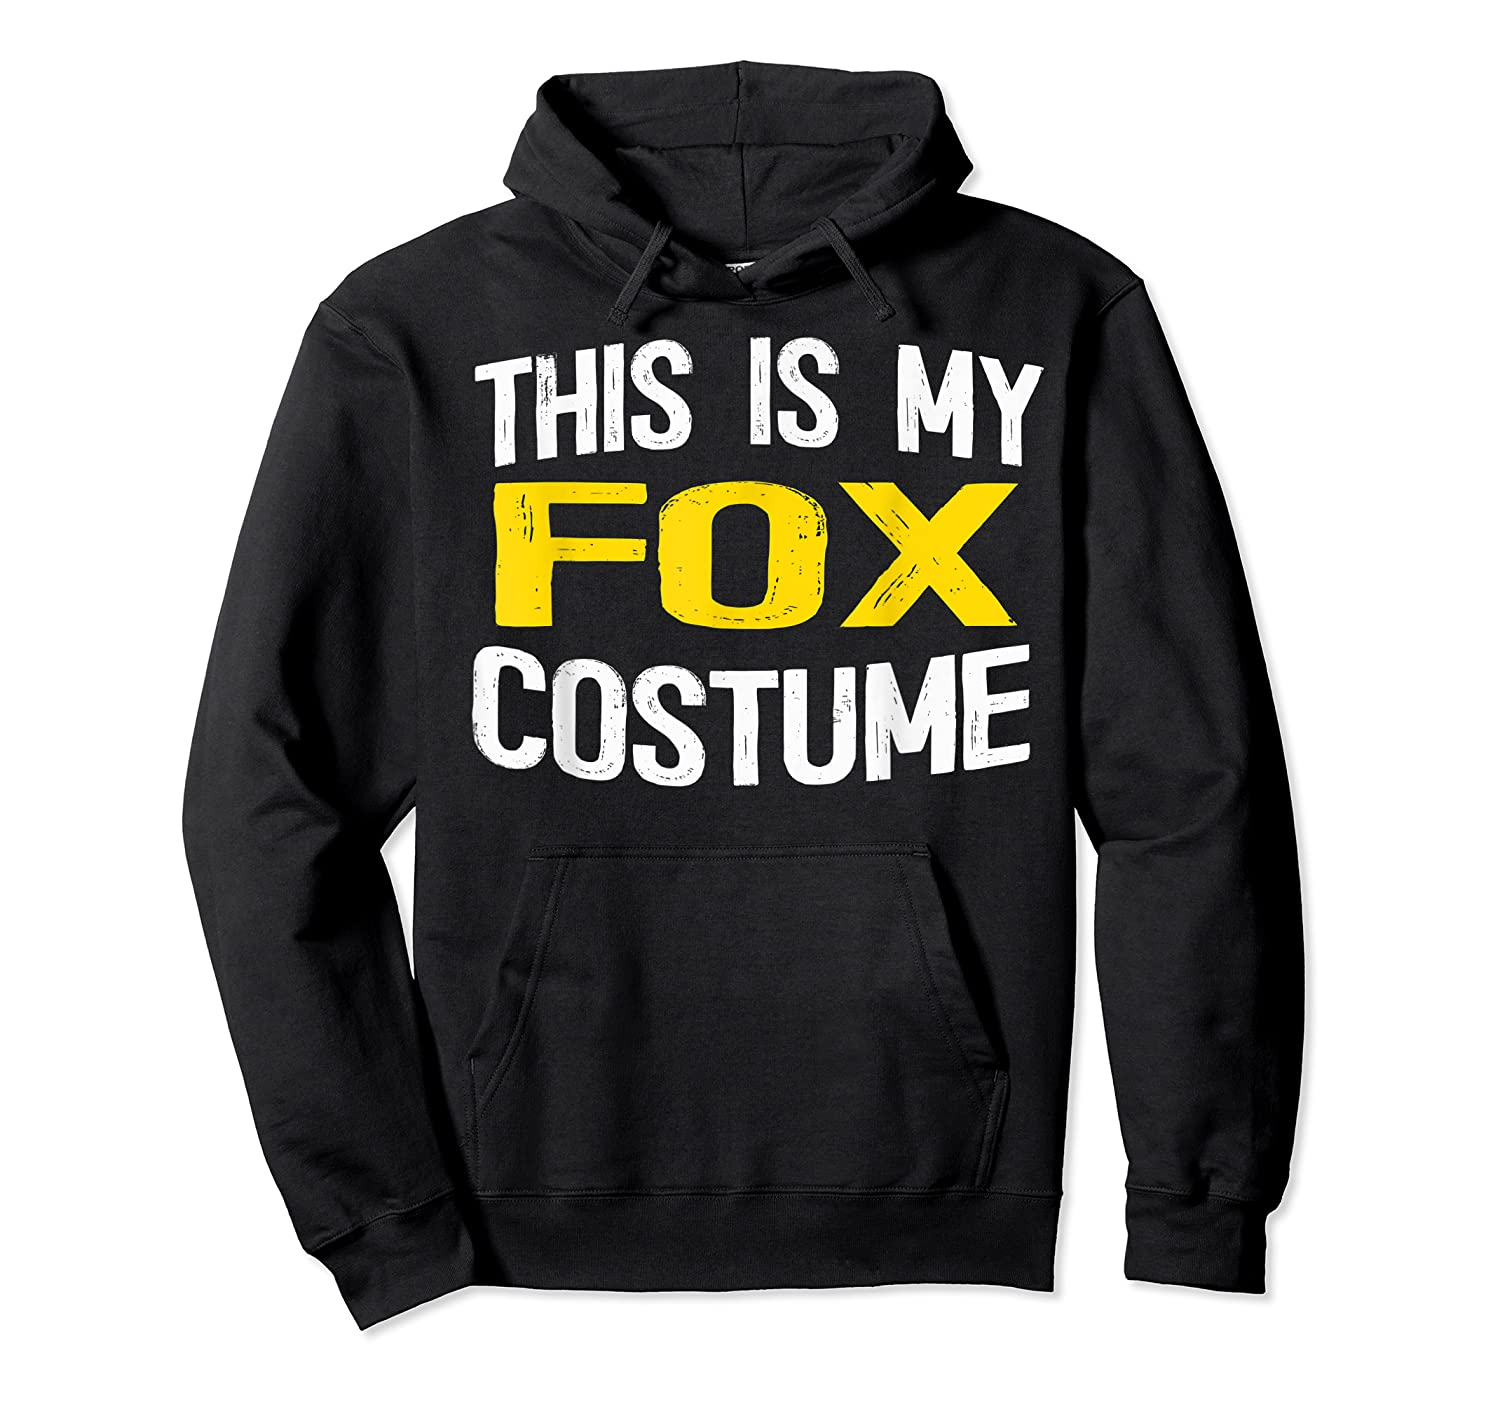 I'm Really A Fox Shirt This Is My Human Costume T-shirt Unisex Pullover Hoodie